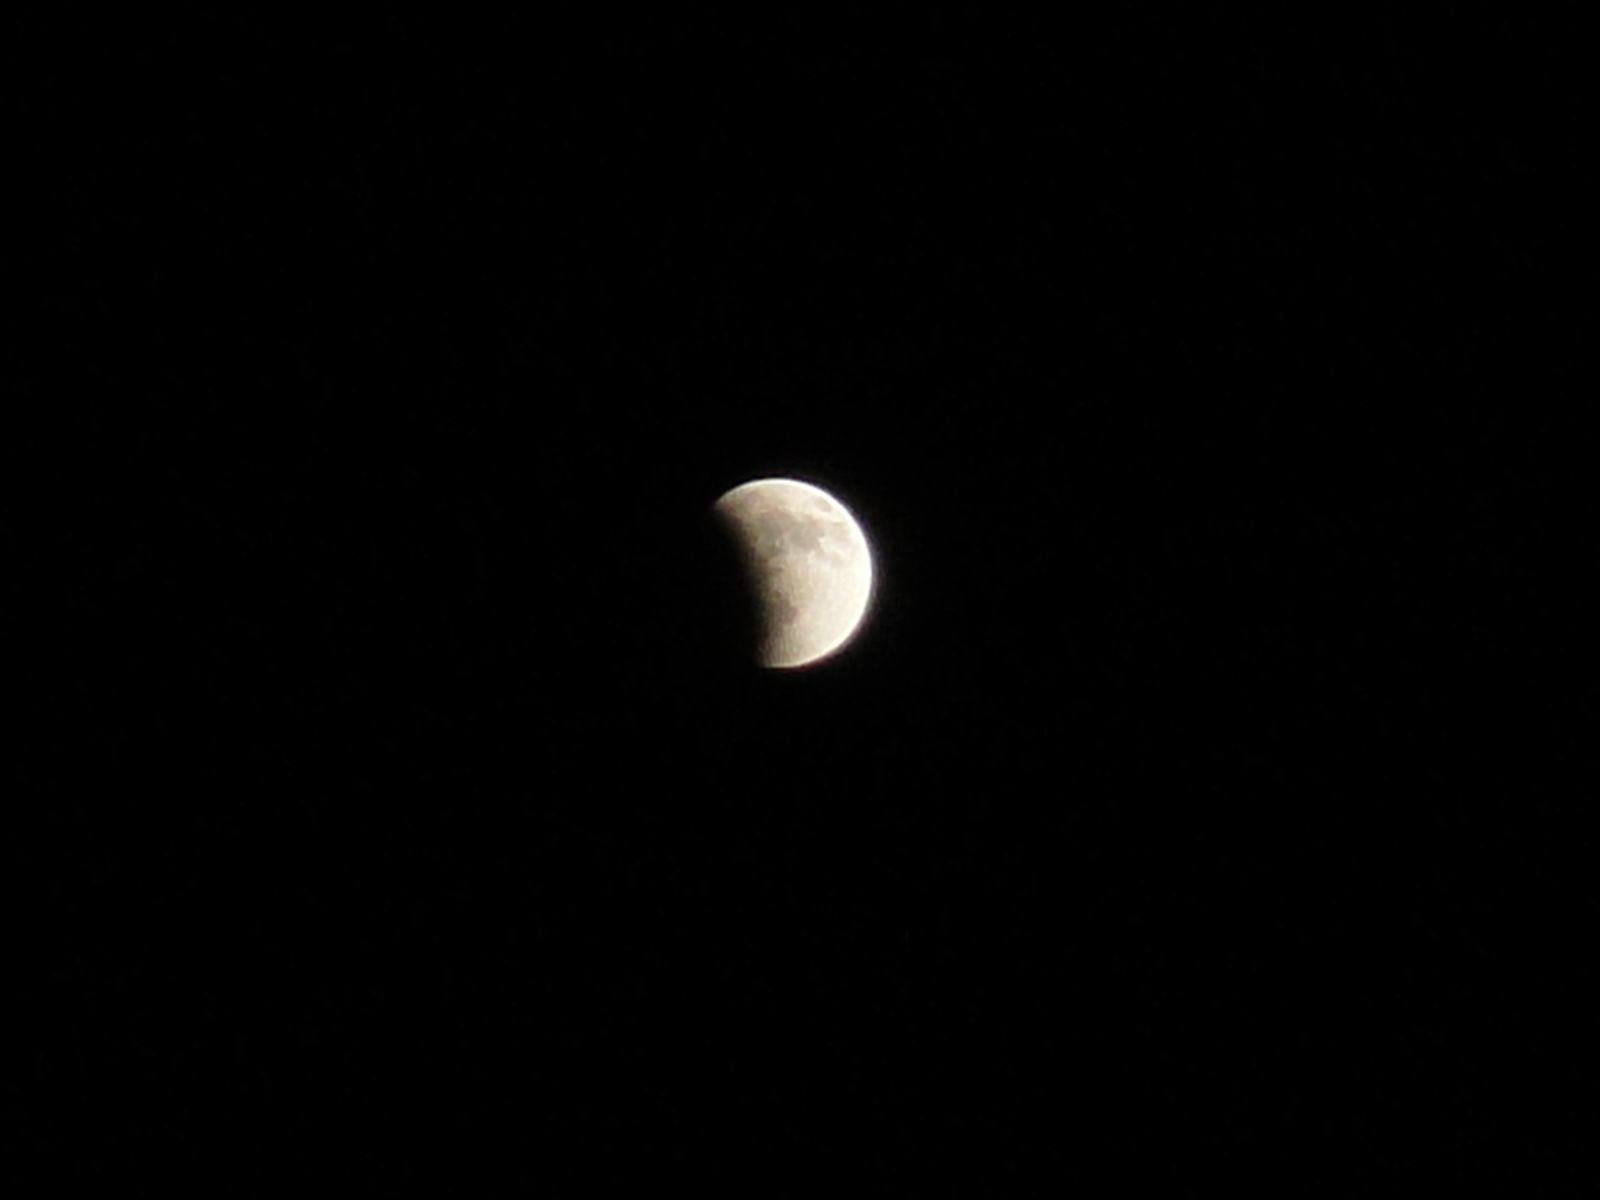 lunar_eclipse_033.jpg